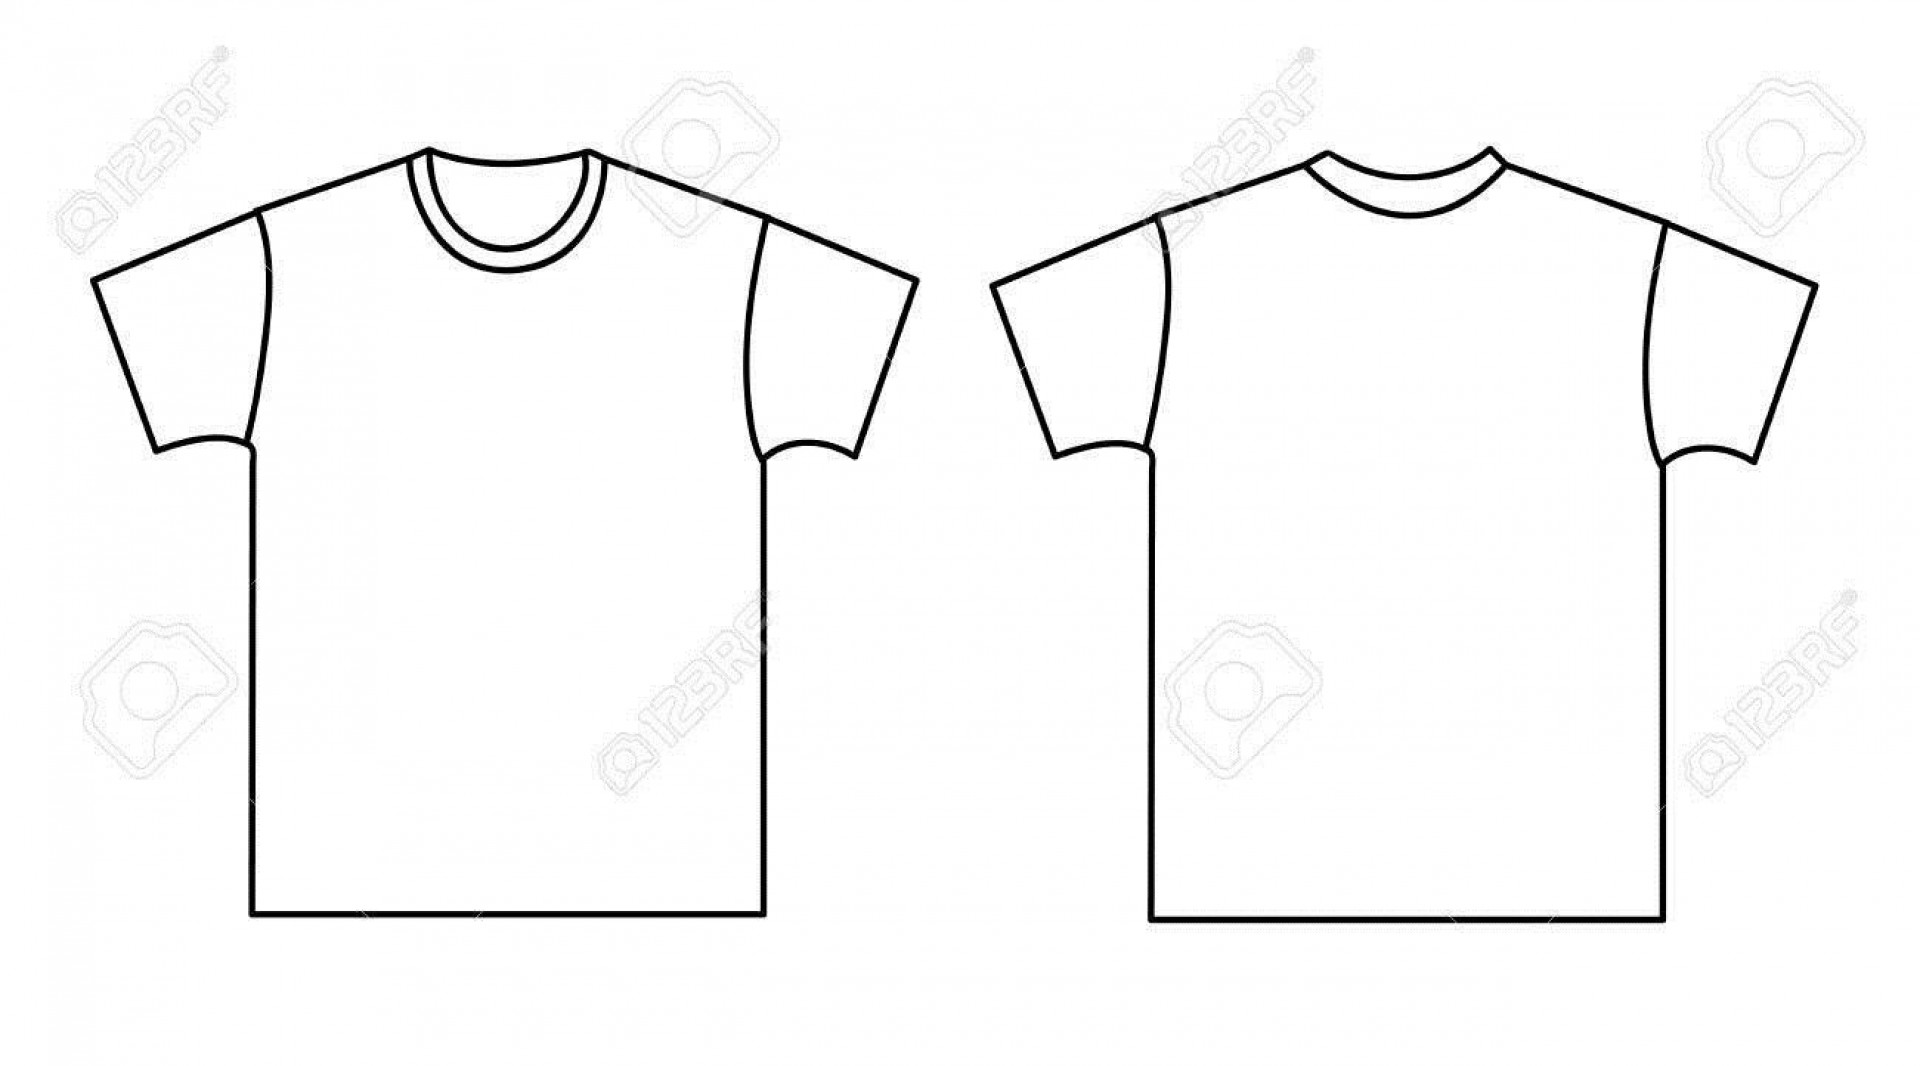 003 Unforgettable Blank Tee Shirt Template Highest Quality  T Design Pdf Free T-shirt Front And Back Download1920